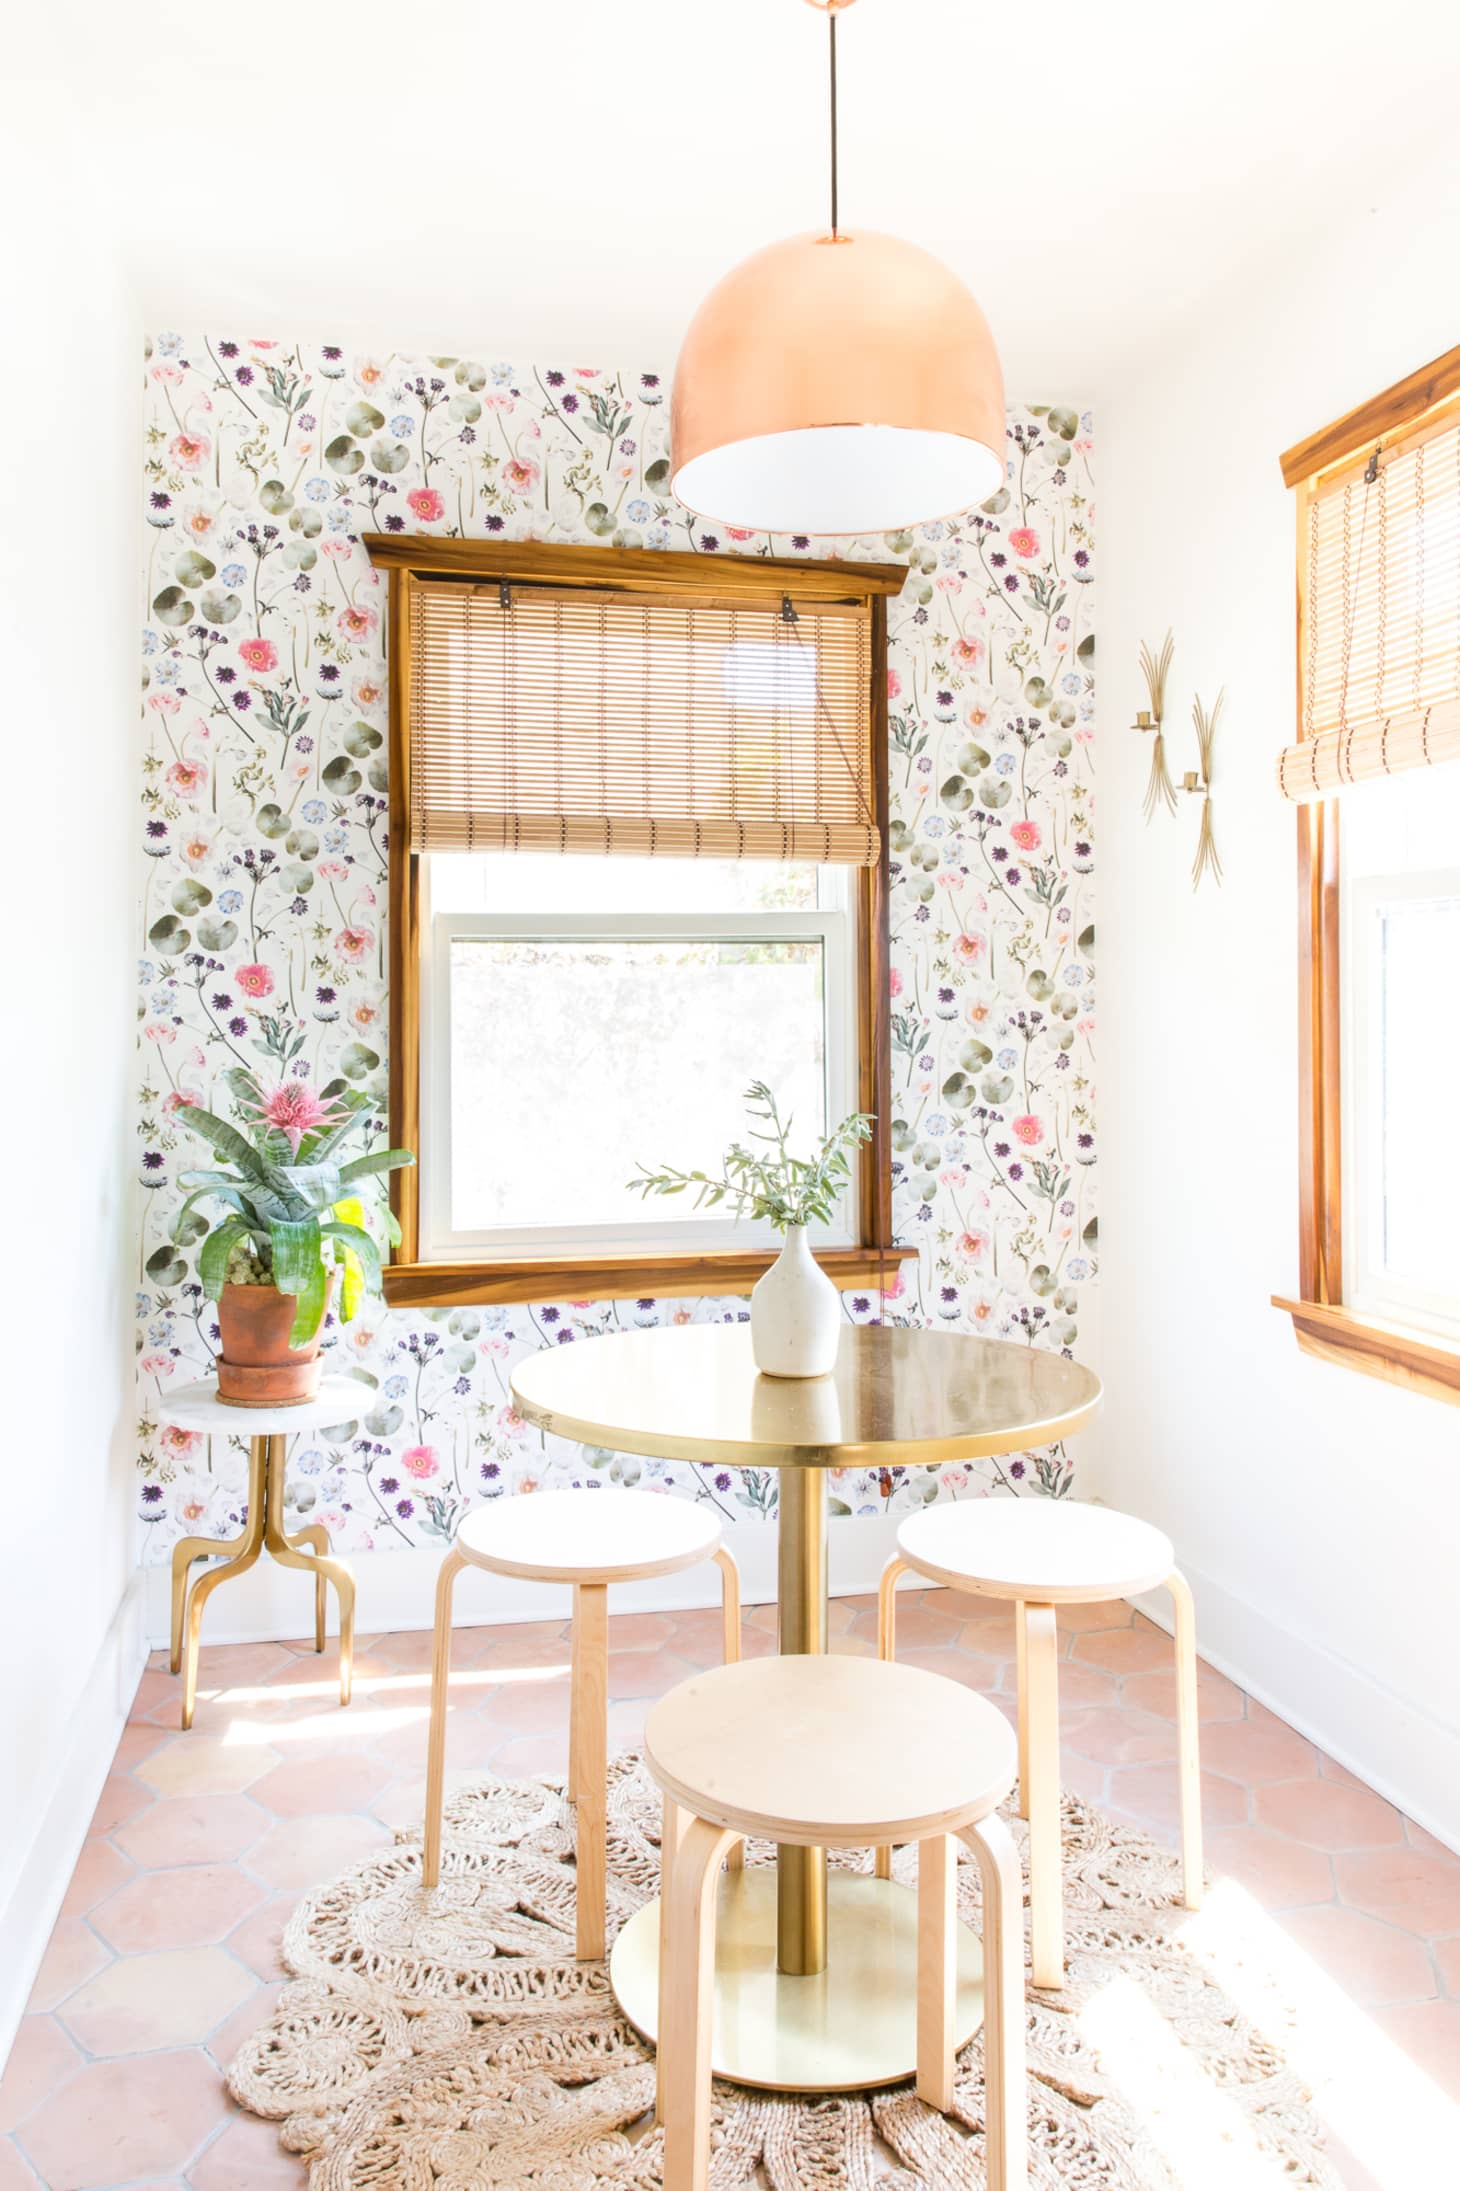 What Nobody Tells You About Removable Wallpaper | Apartment ...